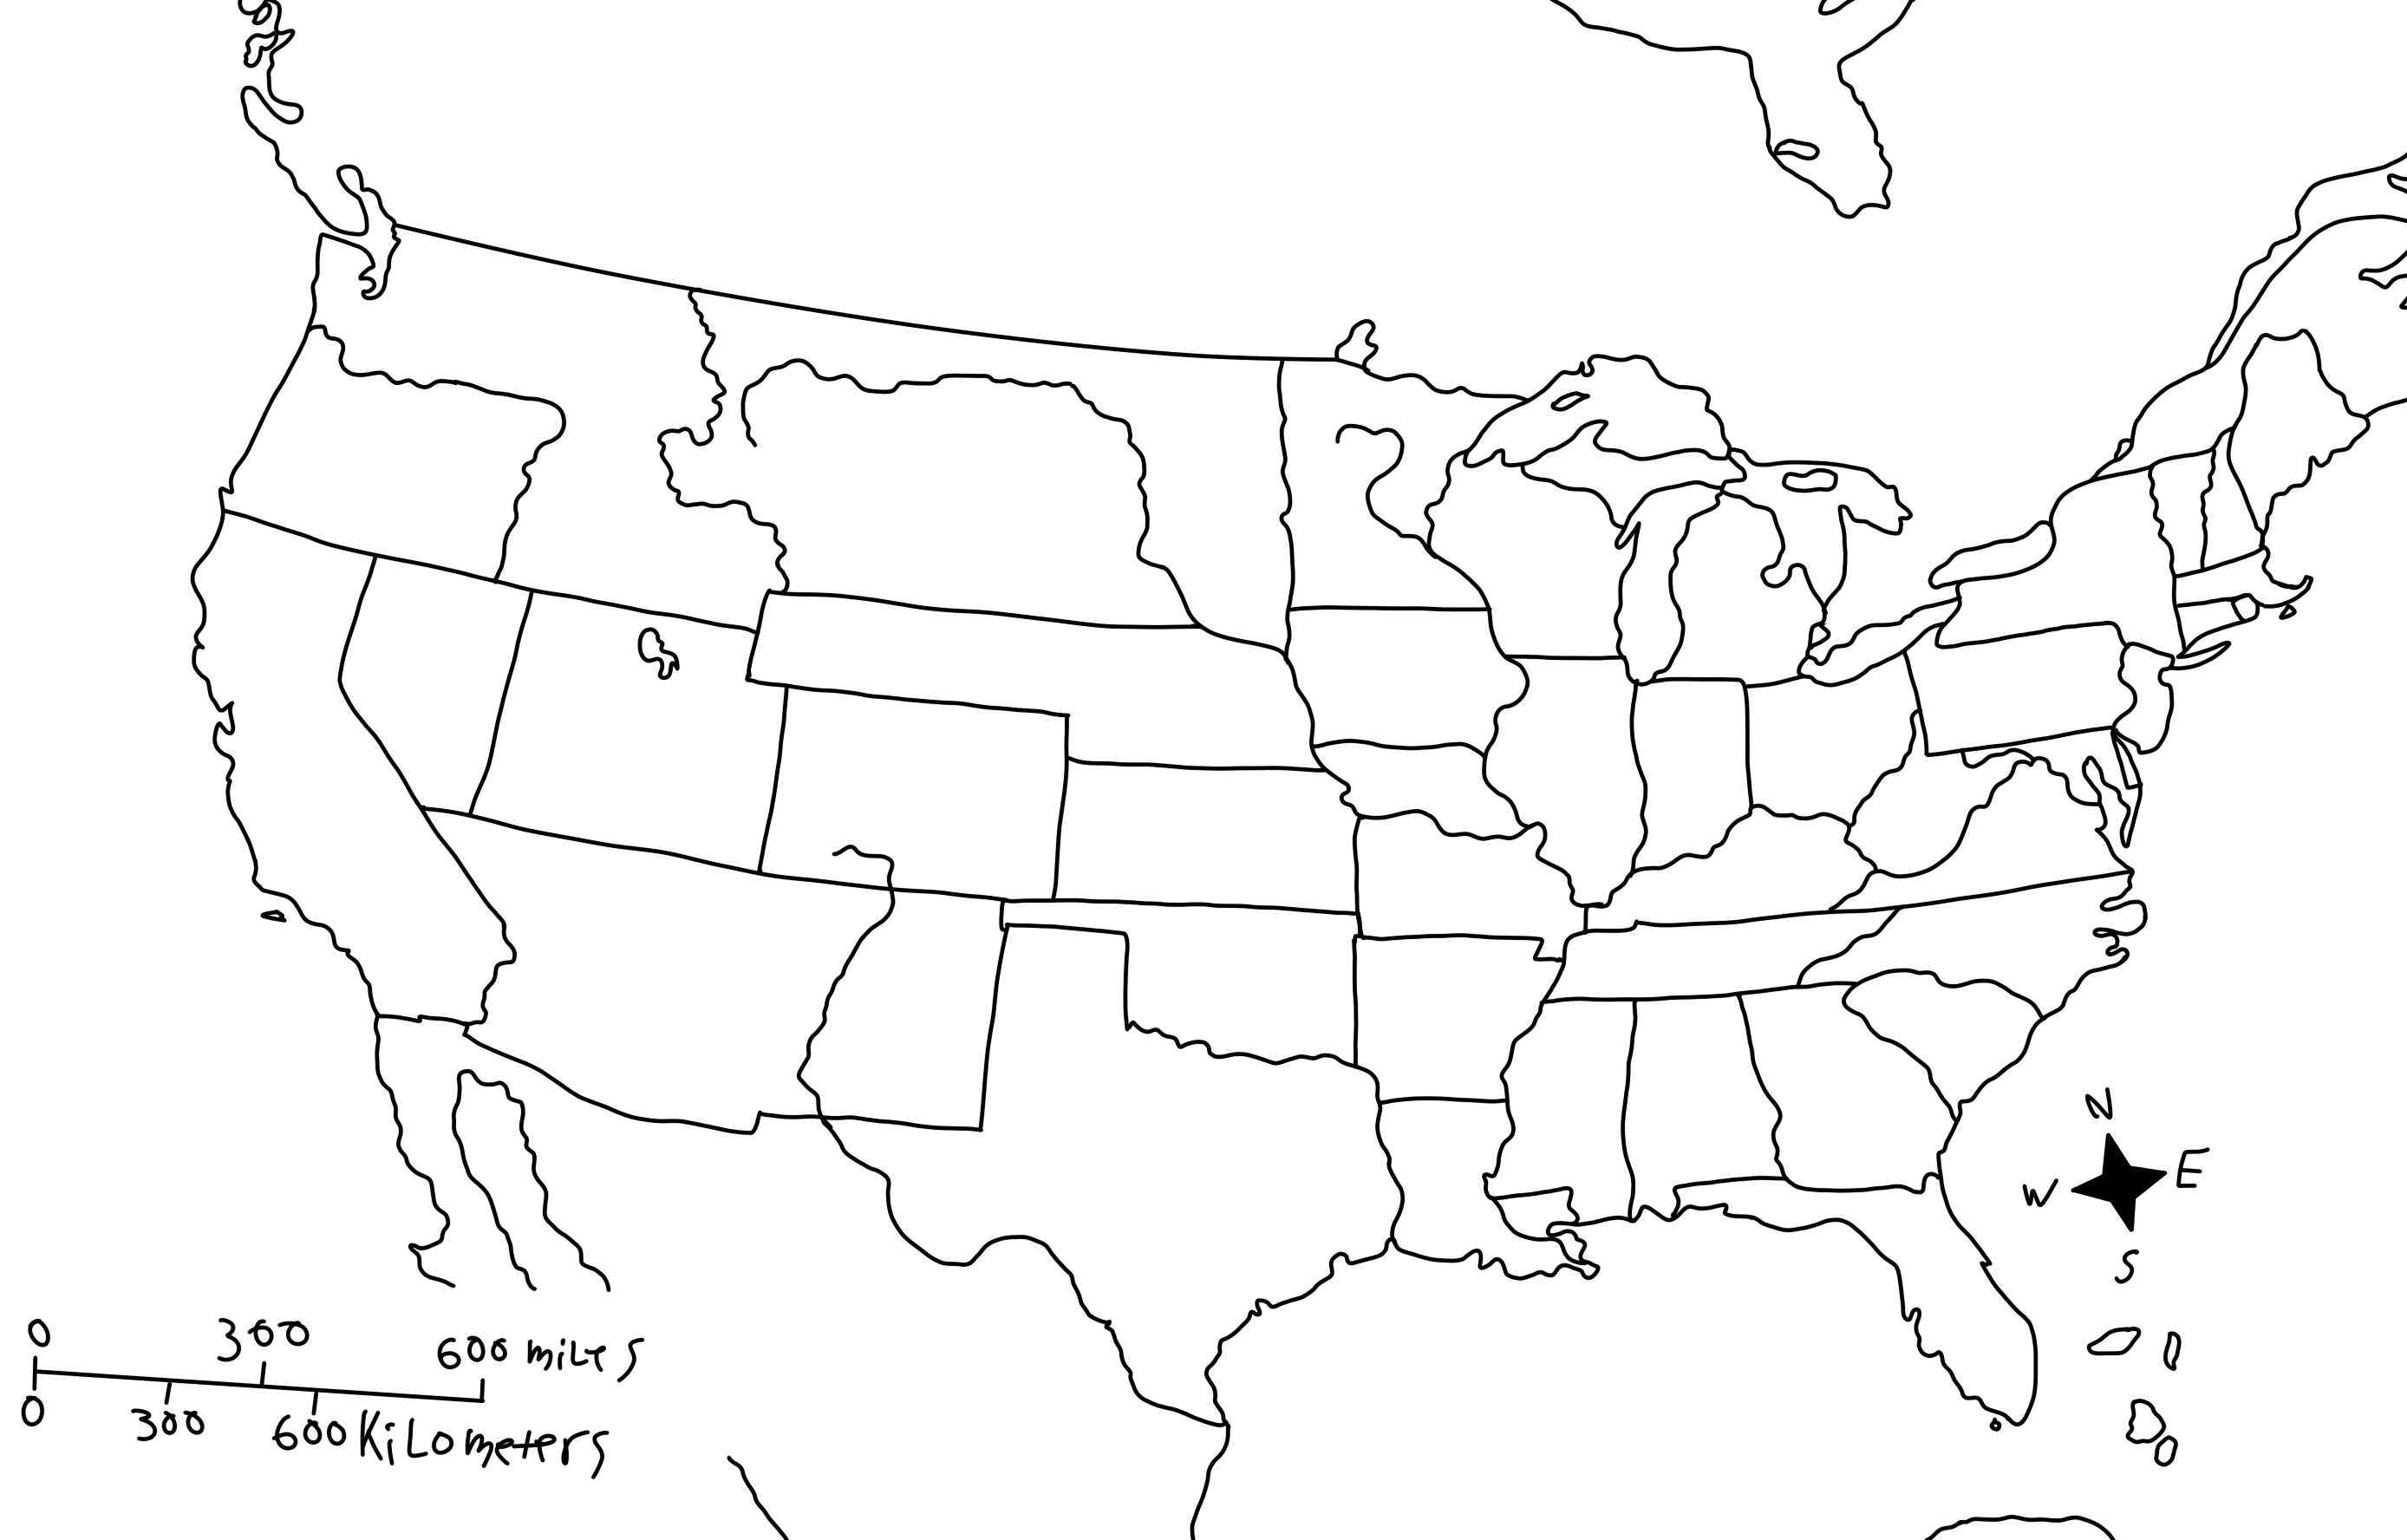 South West Region Blank Map To Label furthermore Chile Outline Map besides Free Printable 50 States Map as well Blank Usa Map With State Outlines as well  on usa map states and capitals